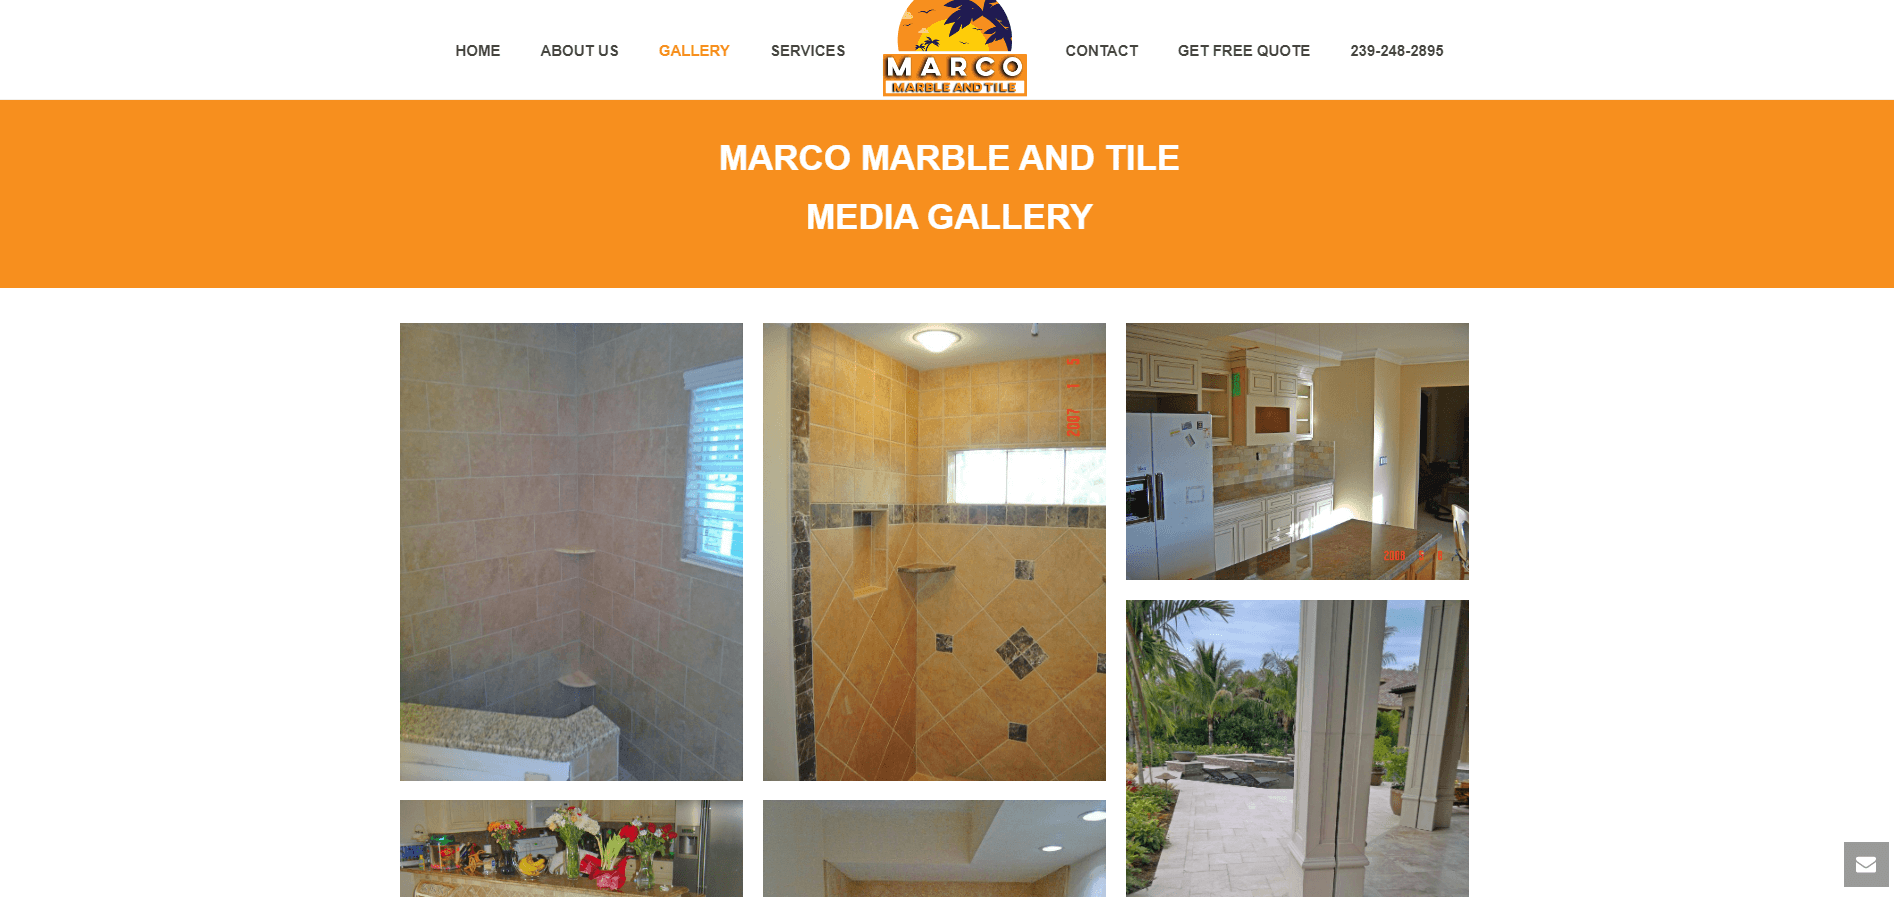 marco marbe and tile gallery page